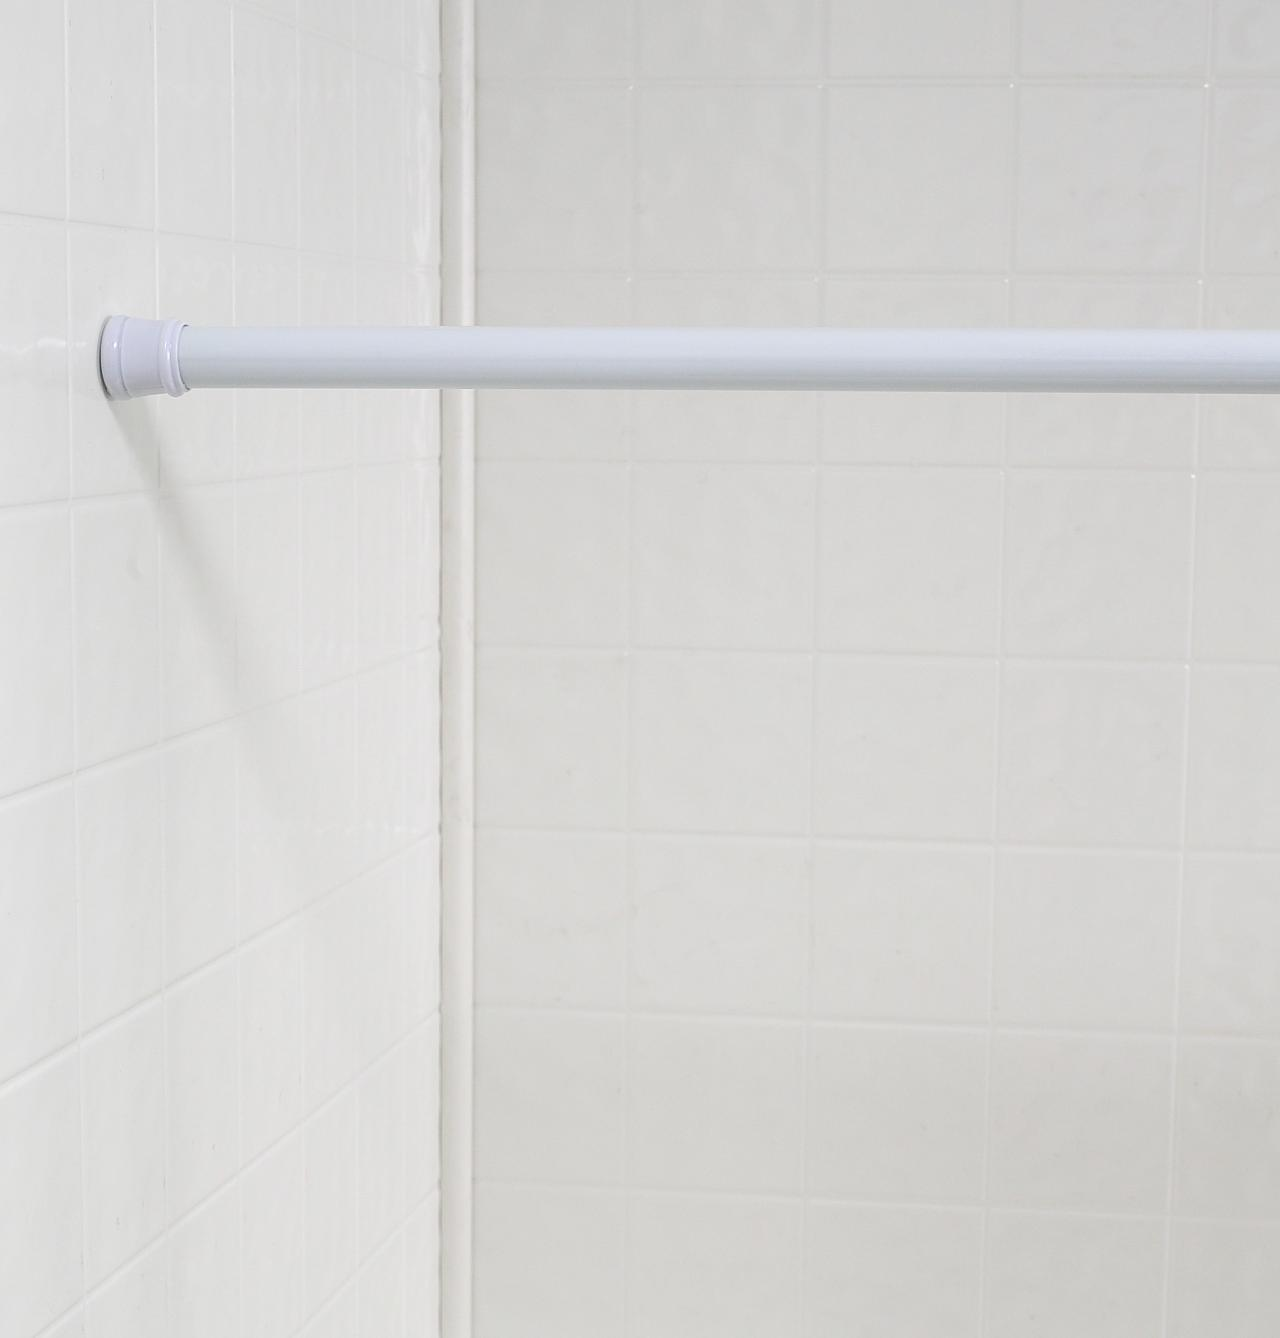 ... Shower Curtain Tension Rod   Standard Size   White ...